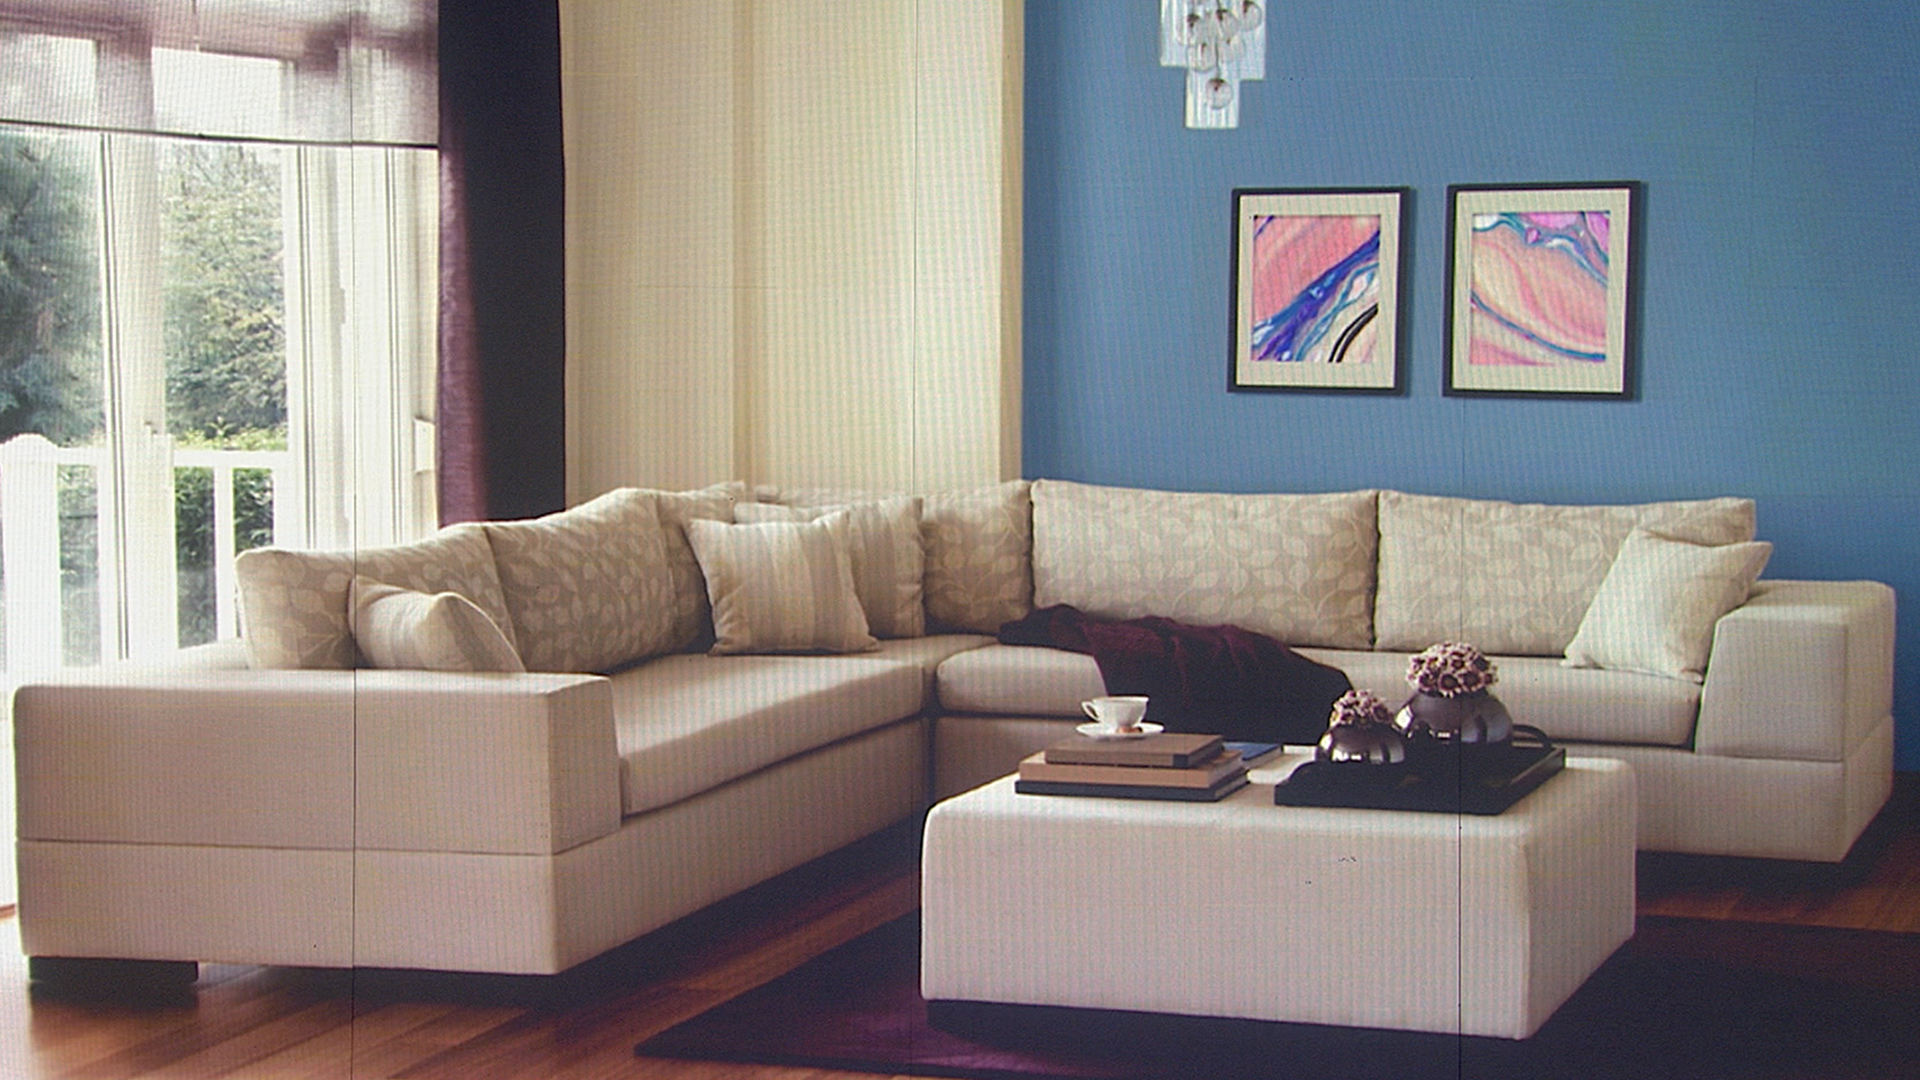 7 Living Room Ideas And Mistakes To Avoid: 6 Design Mistakes To Avoid In Bedroom, Living Room